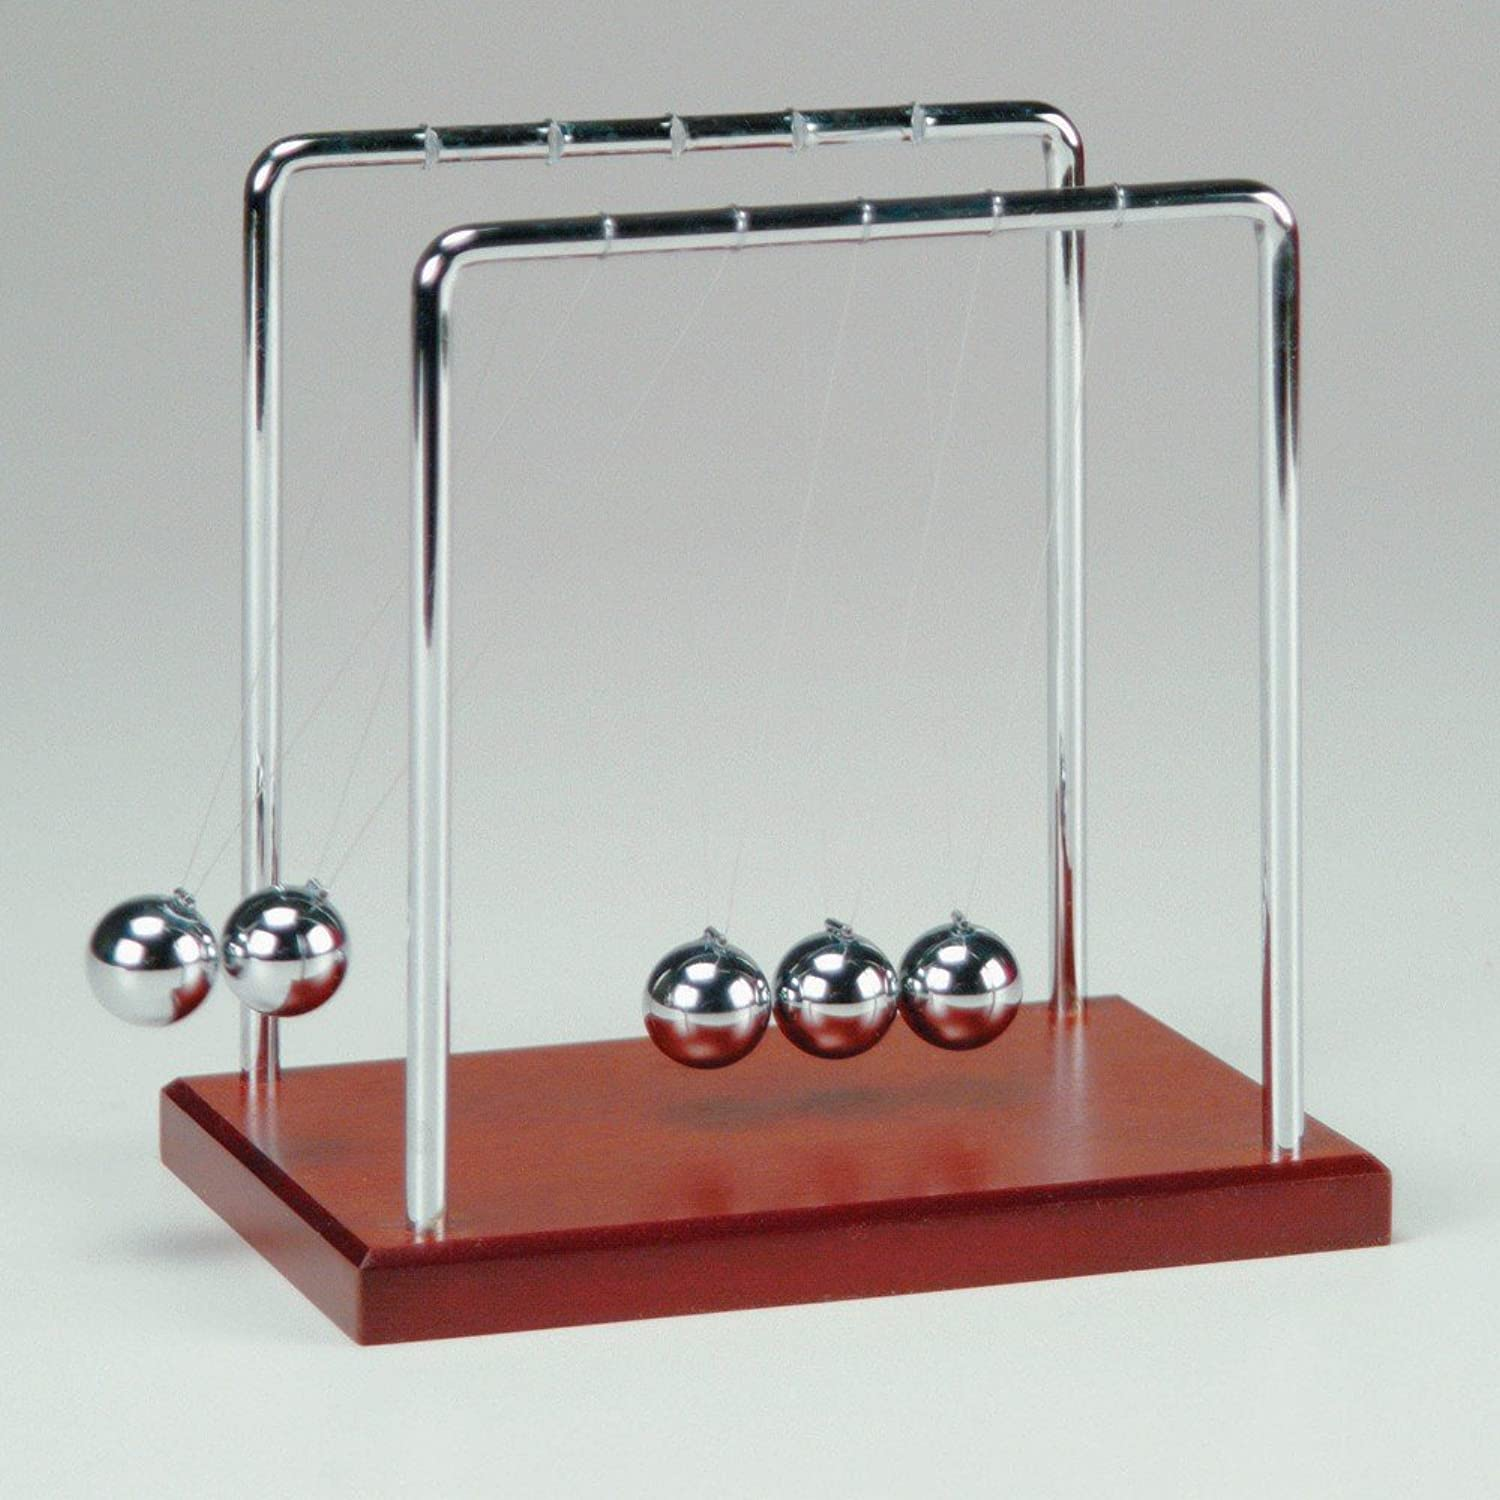 Newton's Cradle with Metal Frame, Balls and Wooden Base  5.5 Inch [Toy]